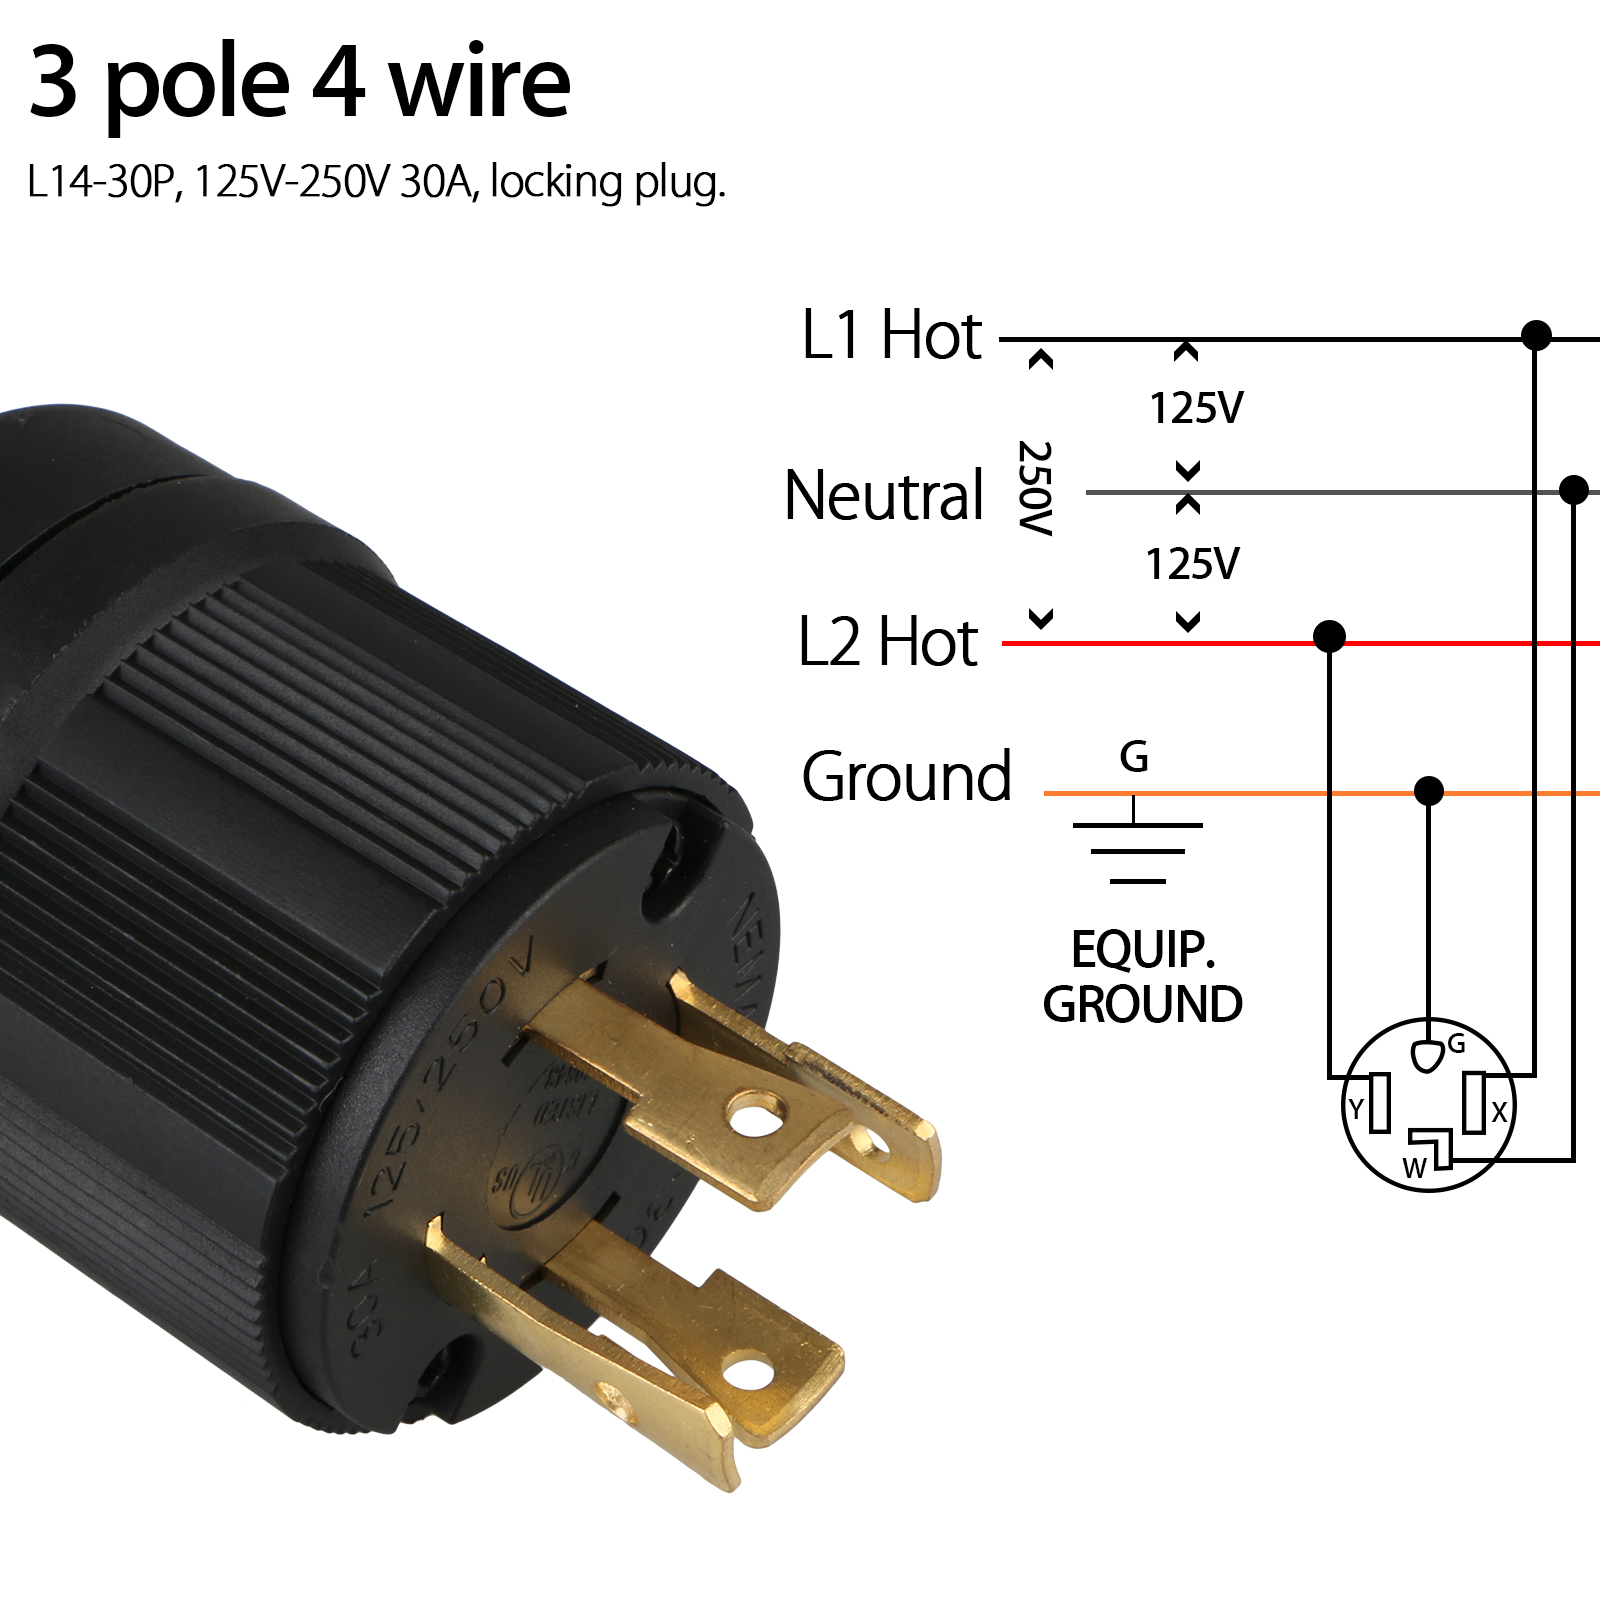 Wiring Diagram For A 3 Prong Plug To A 4 Wire Cord On Nema L14 30p